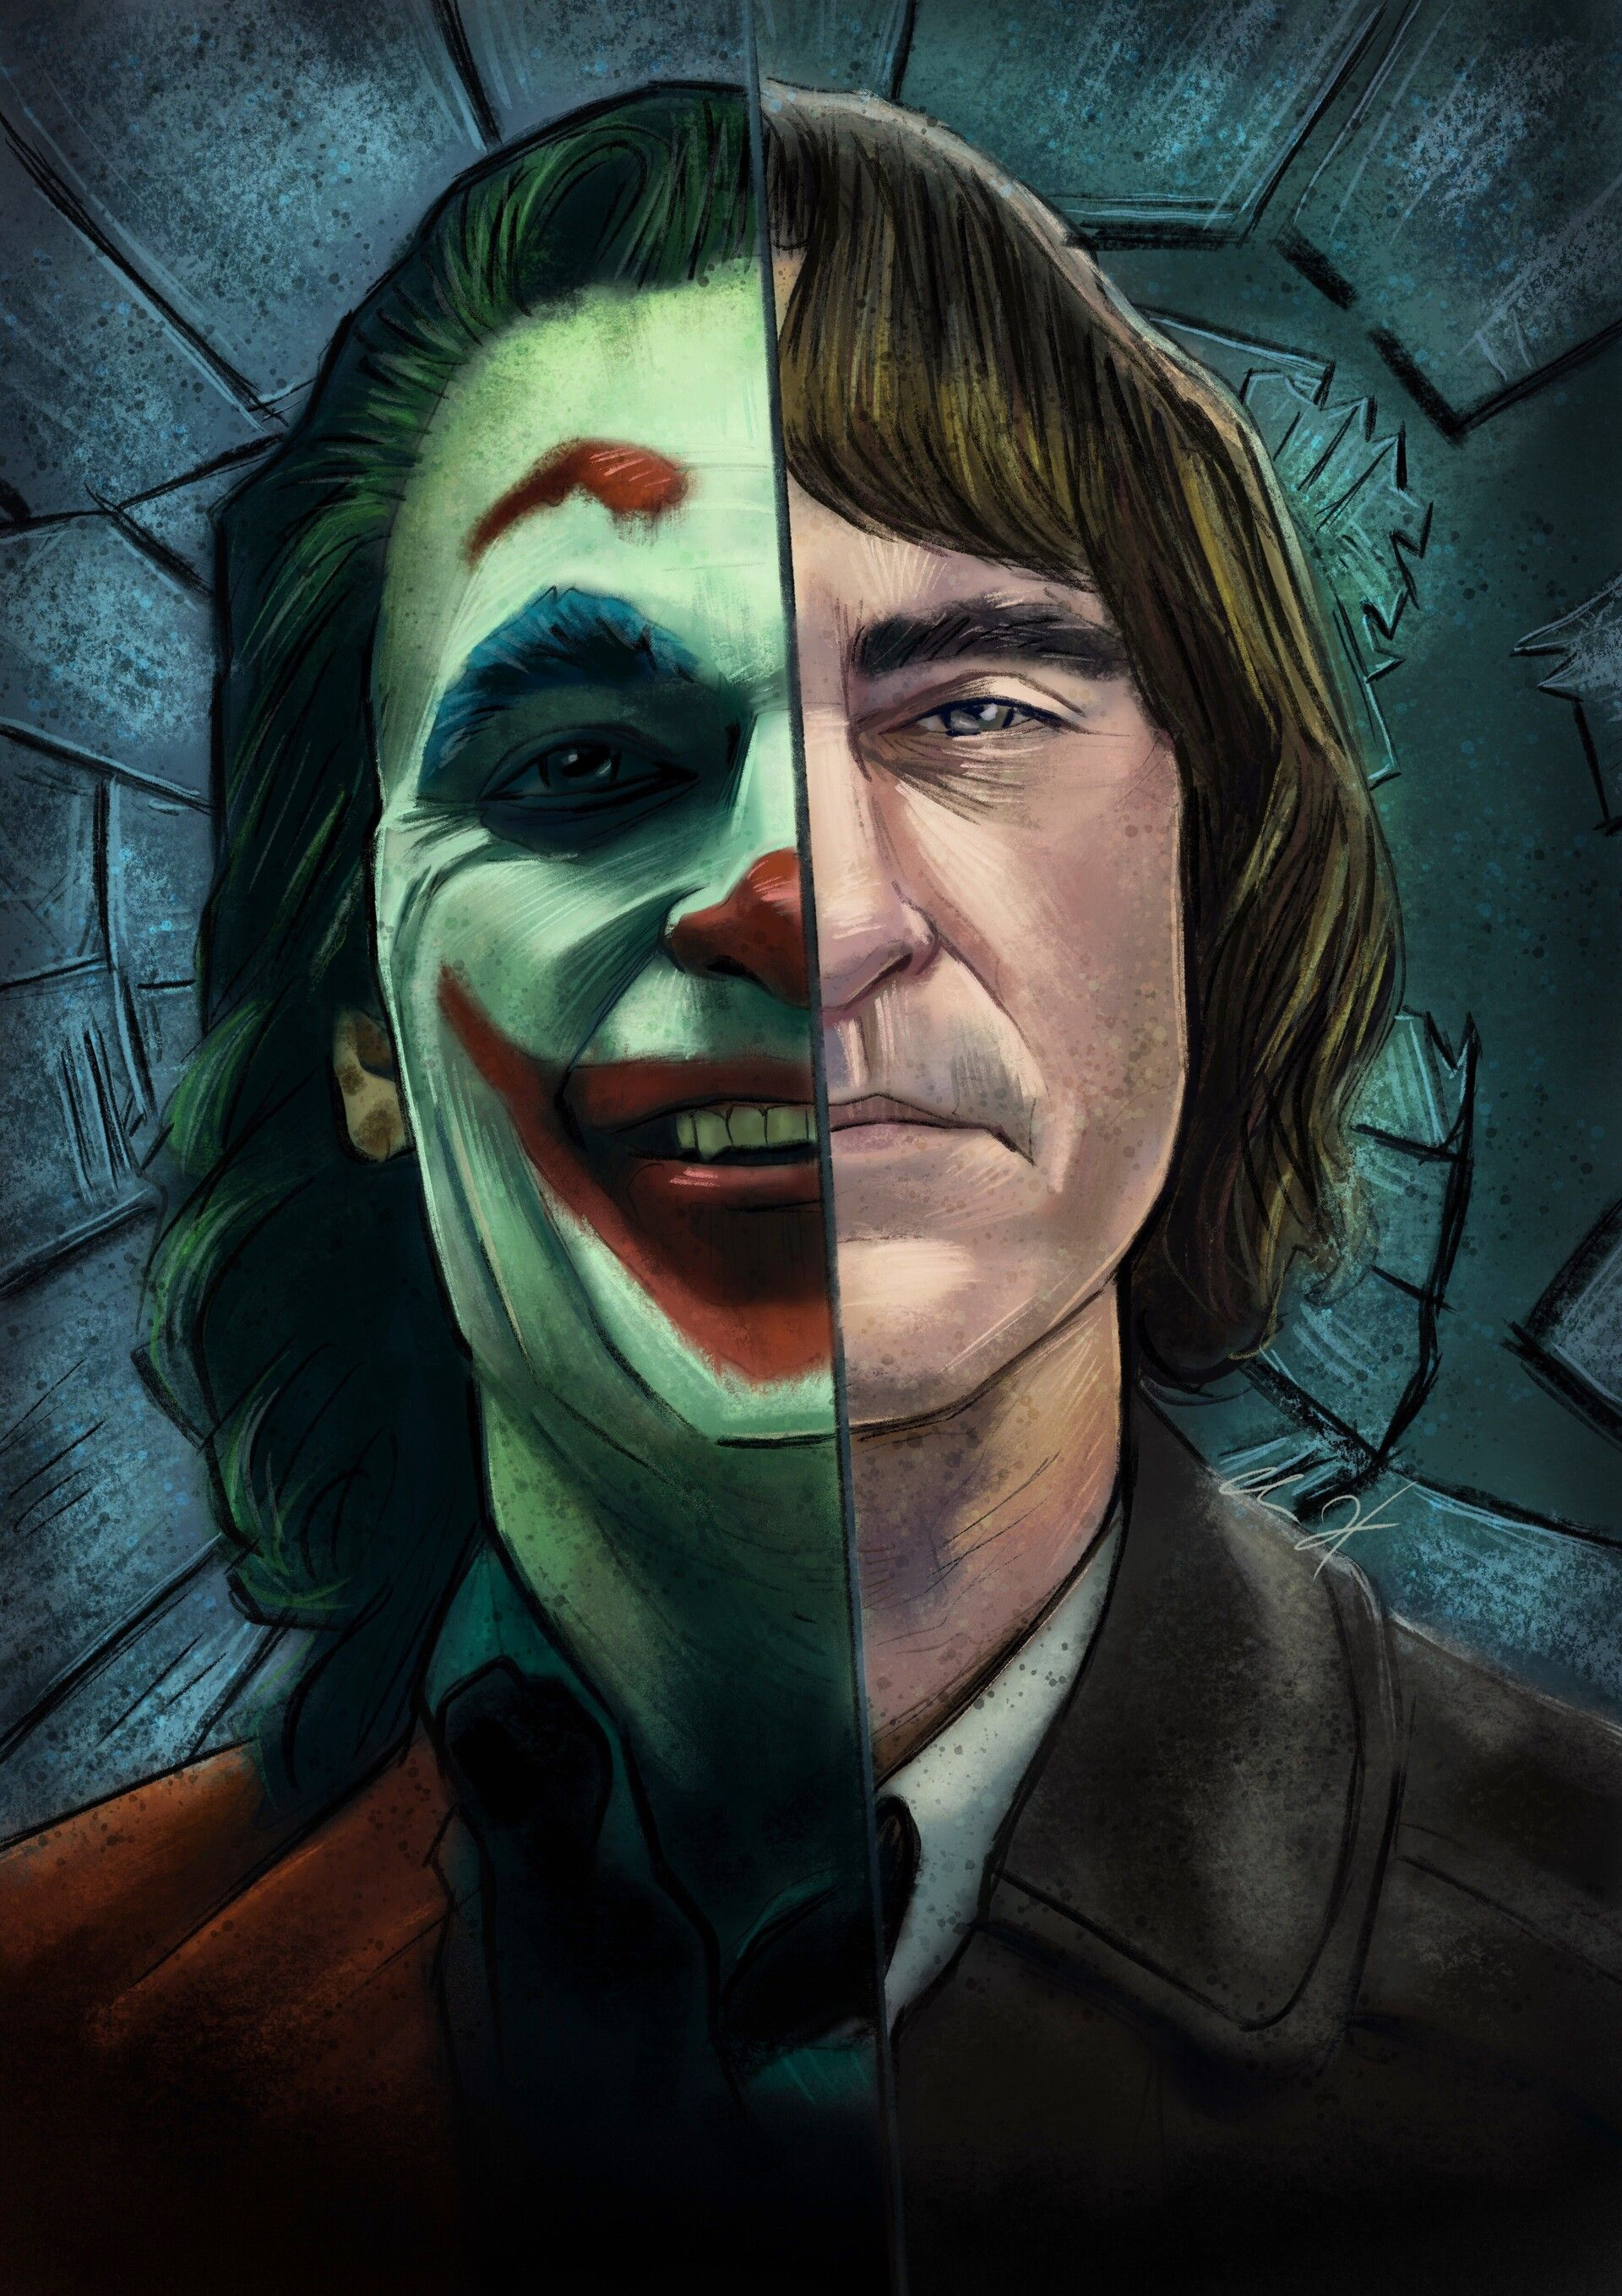 Pin By Stacey Putman On Joker Joker Artwork Joker Art Joker Poster